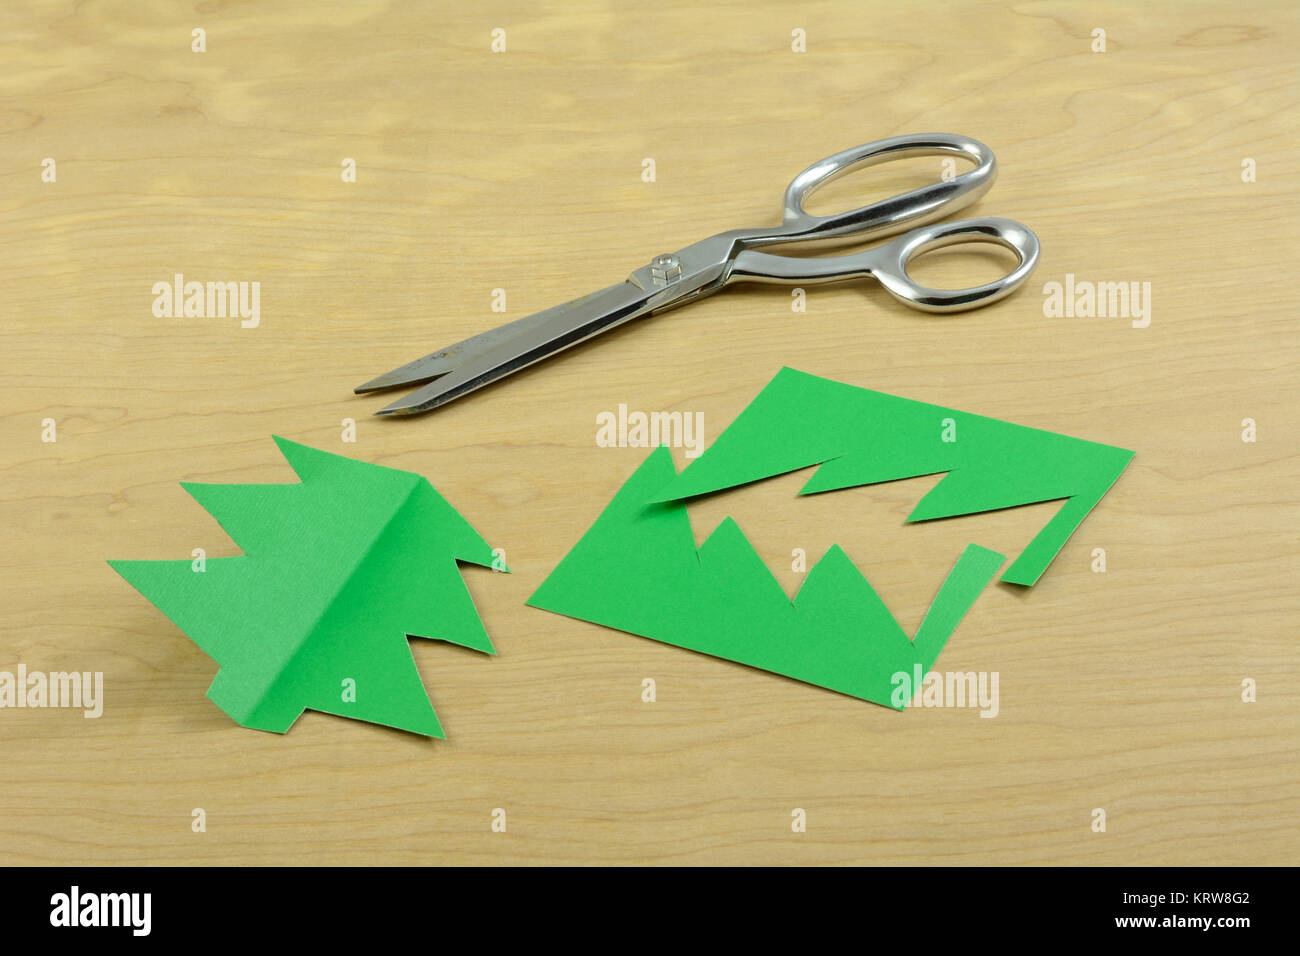 Stainless steel scissors and Christmas tree cut from construction paper on wooden table - Stock Image